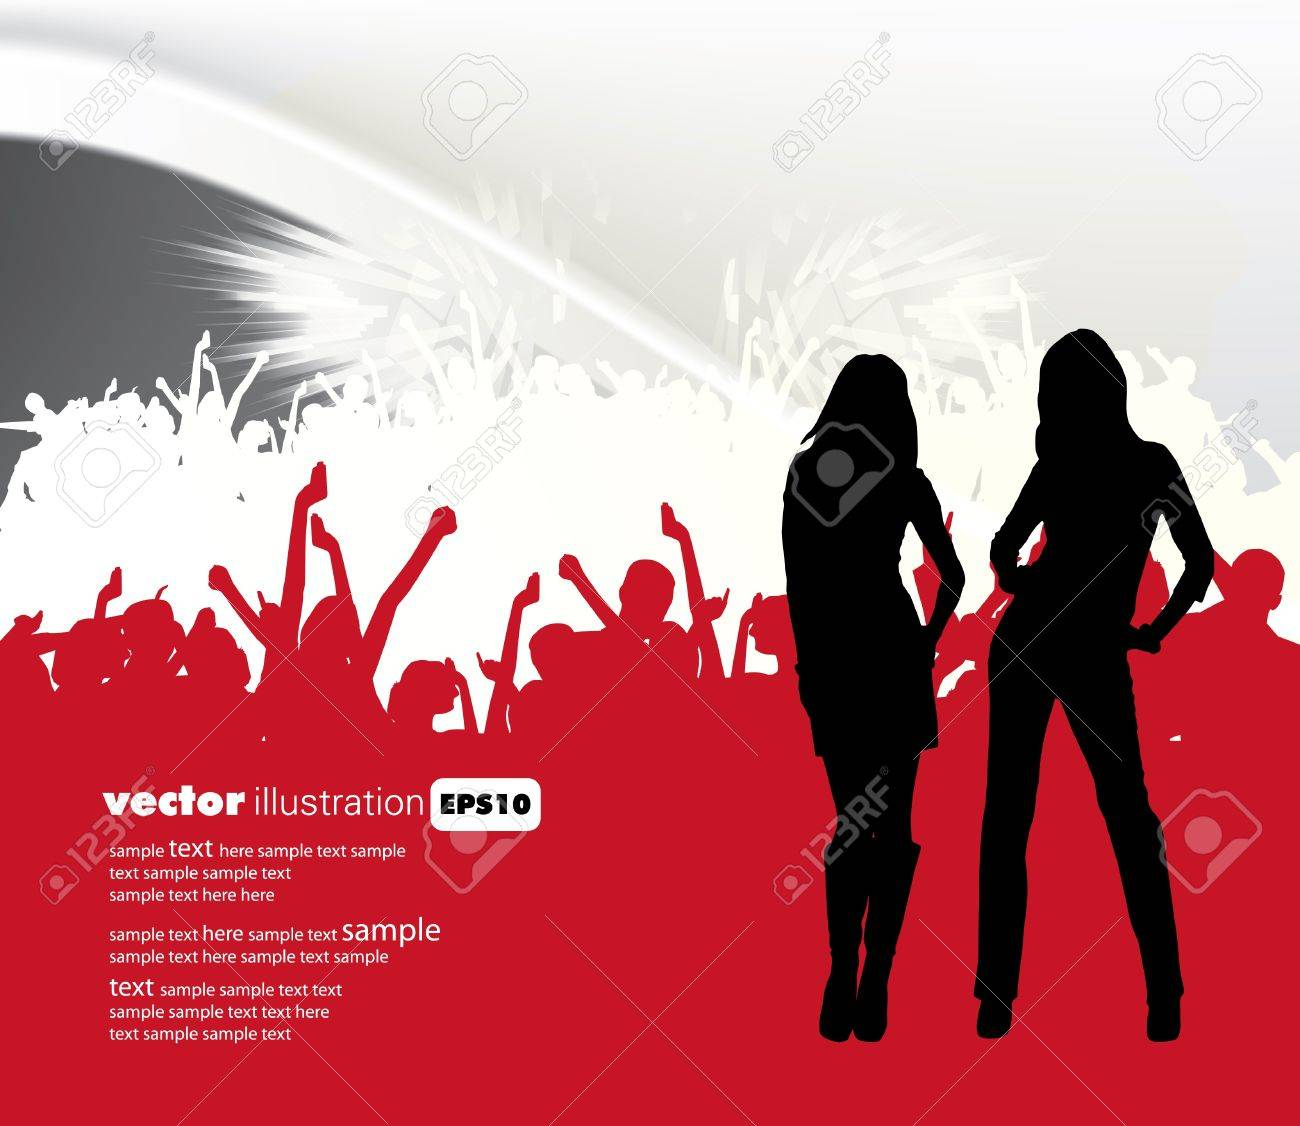 Music event background. Stock Vector - 11280306